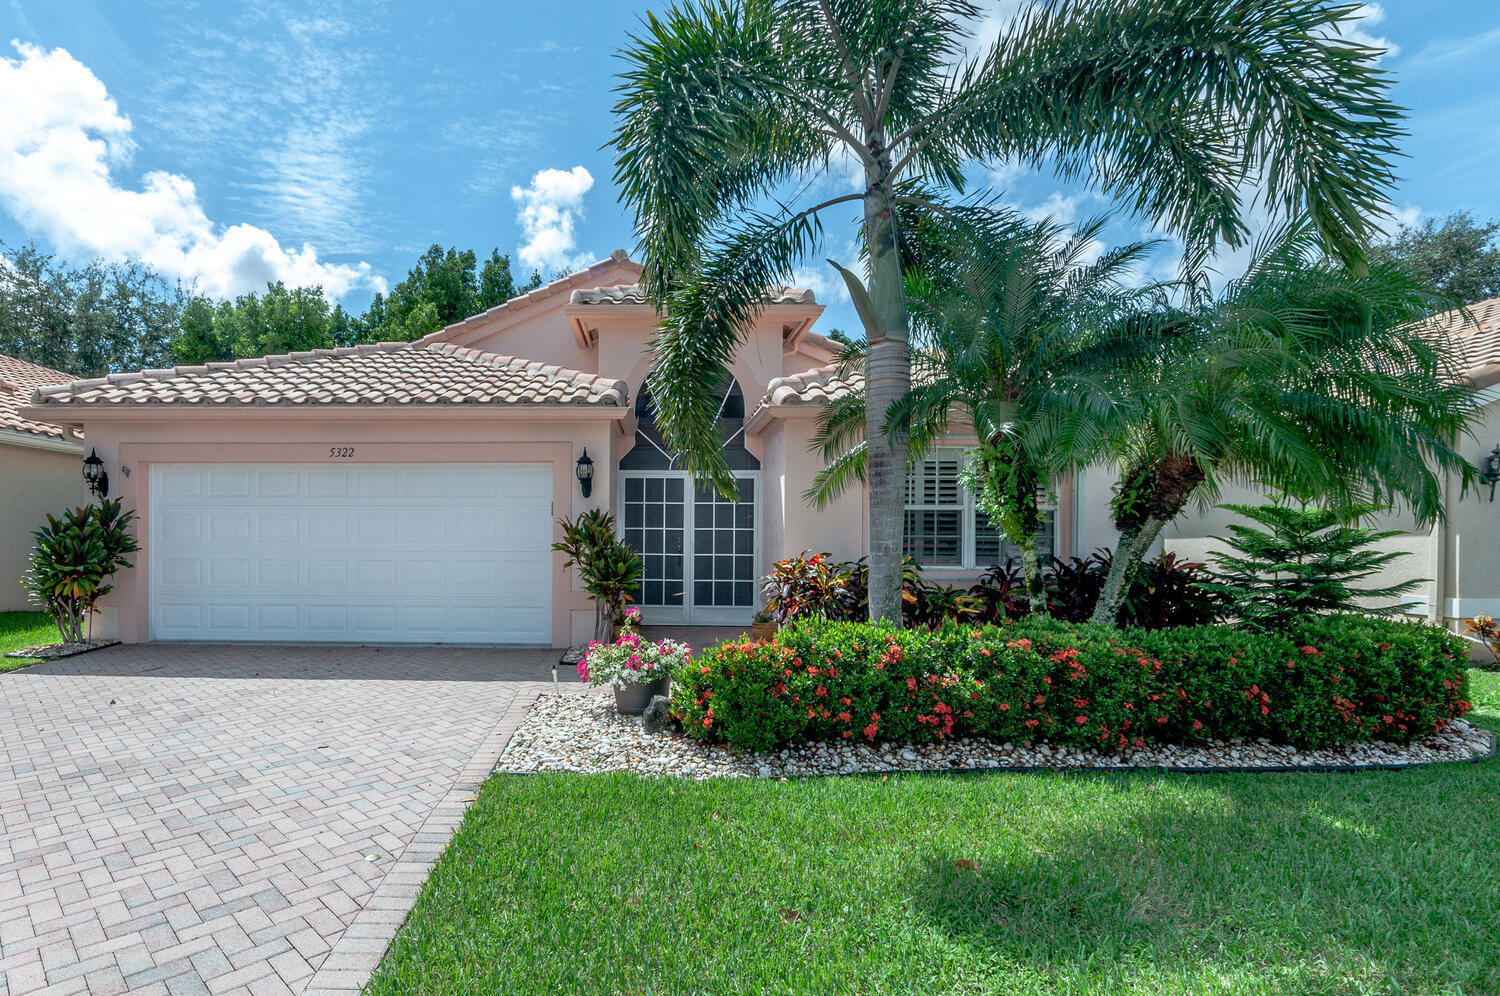 5322  Wycombe Avenue  For Sale 10745622, FL